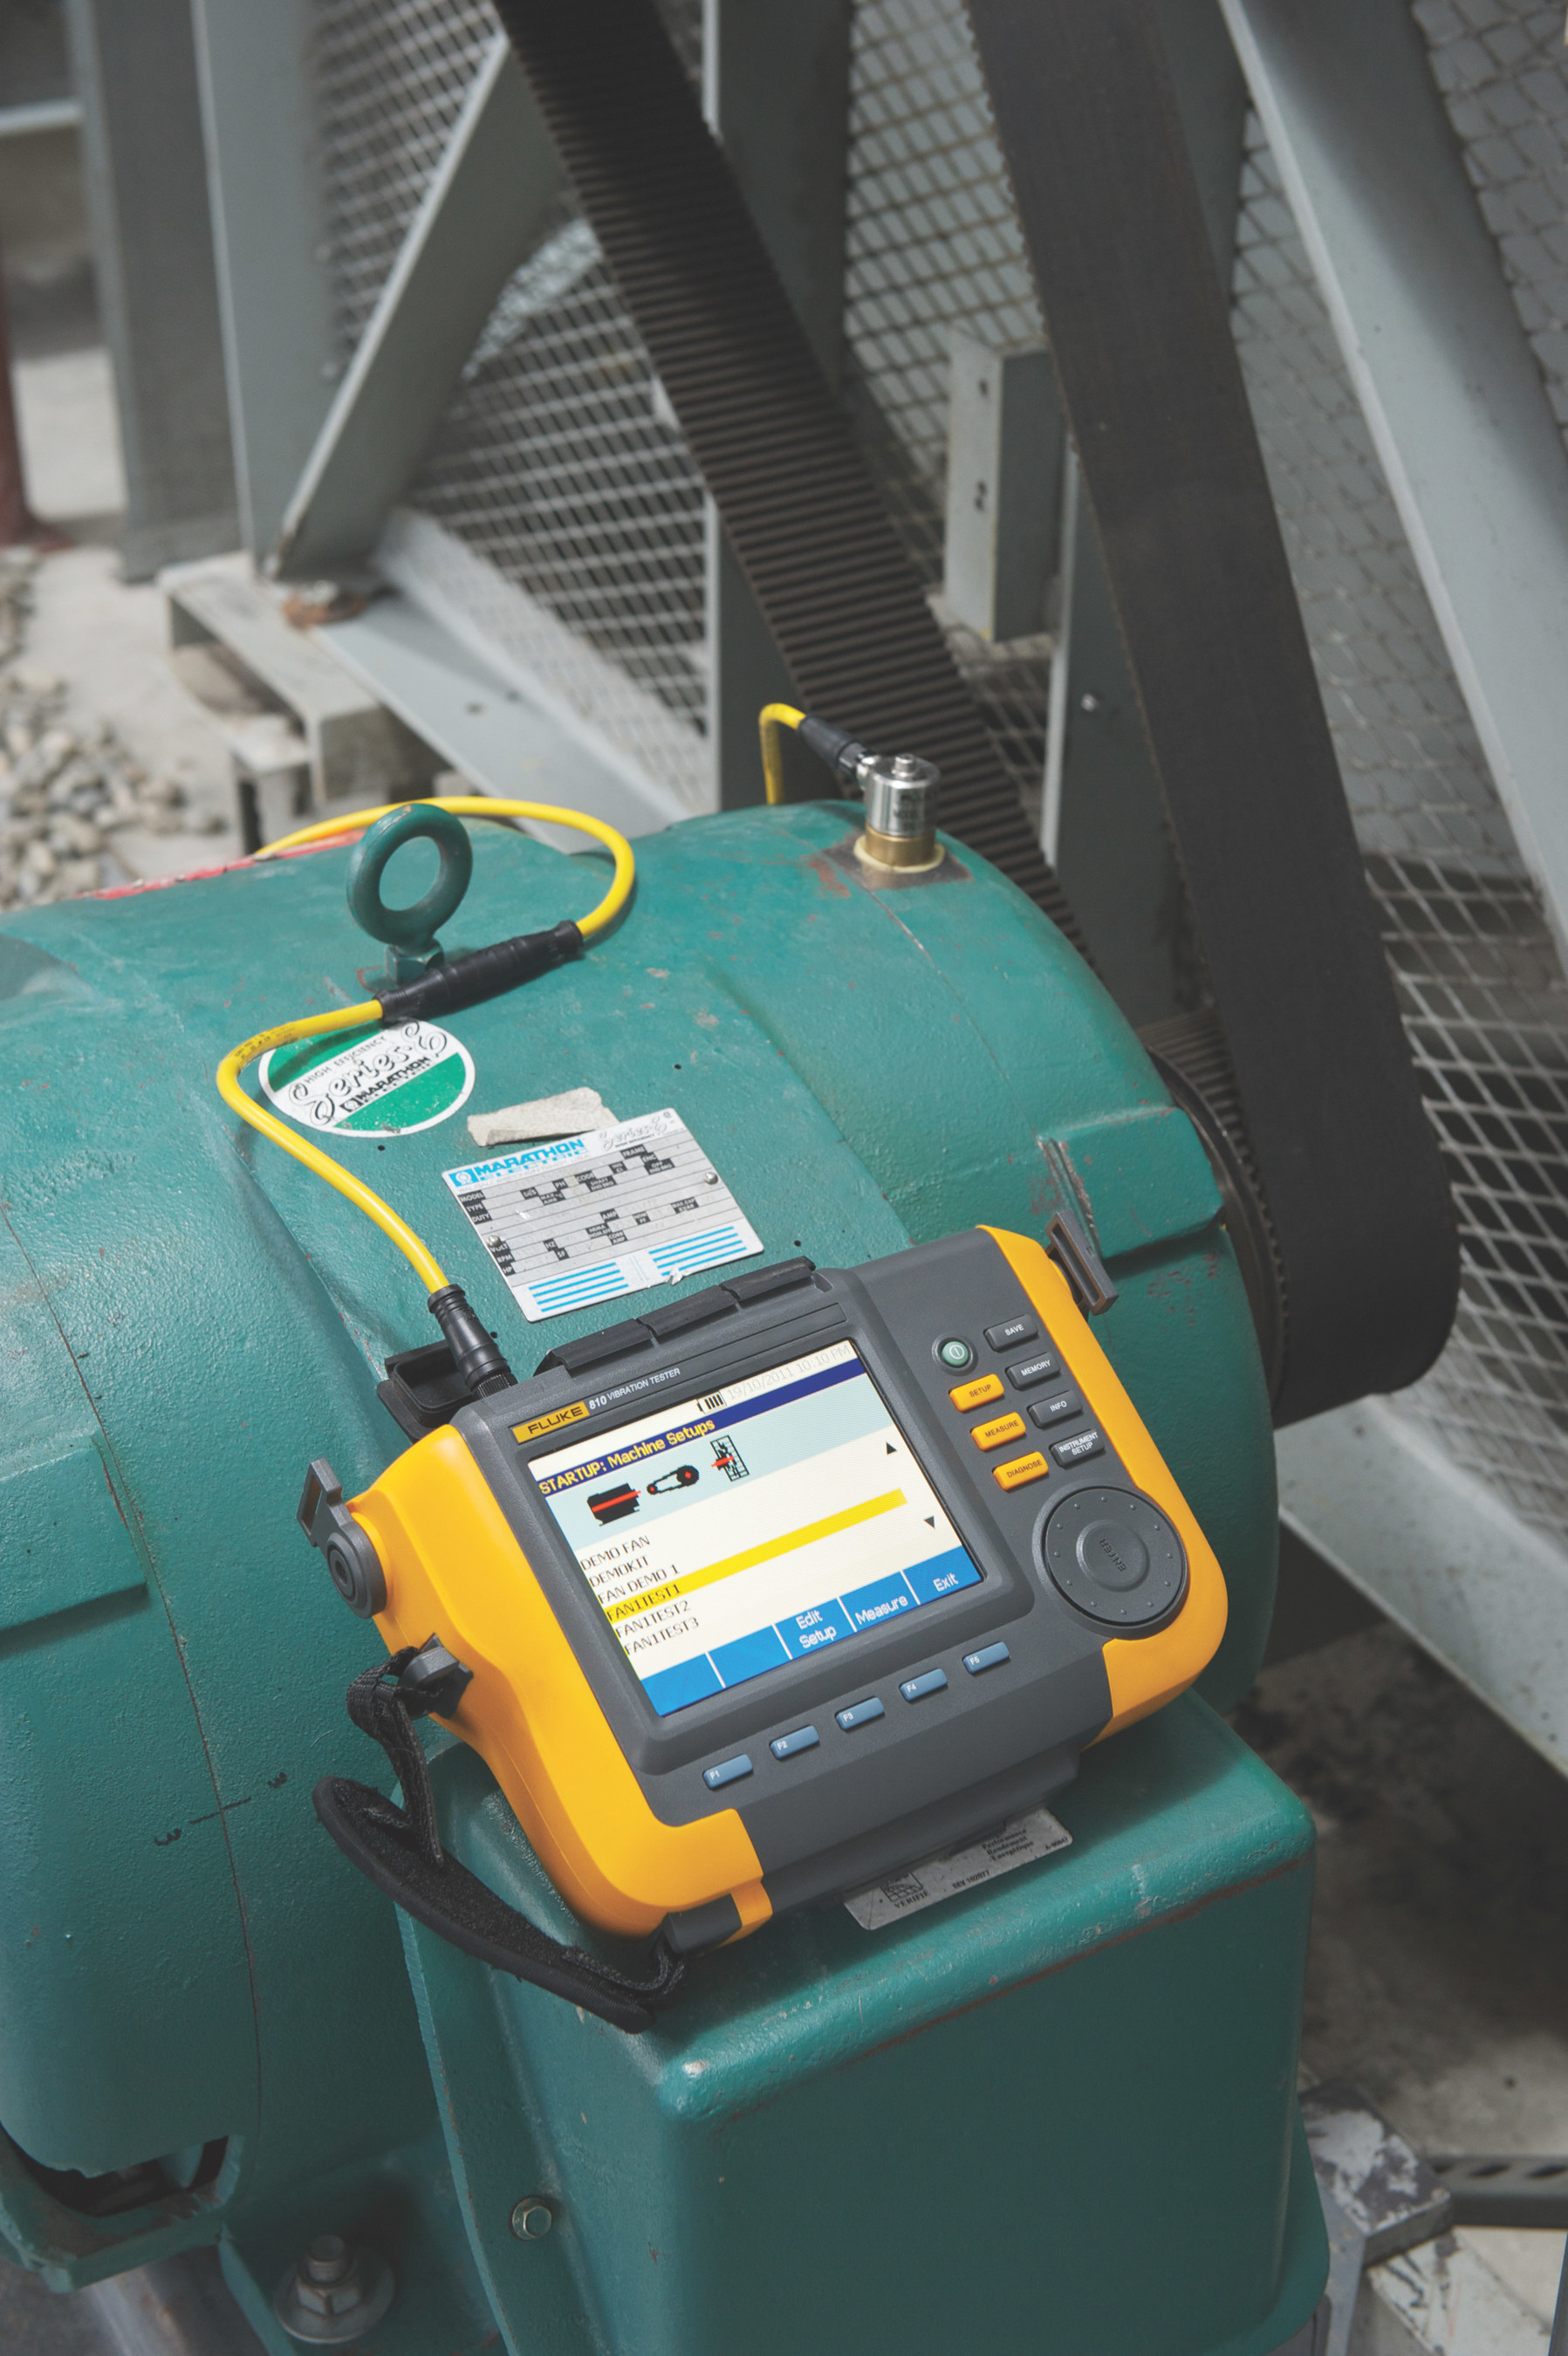 Fluke enhances the 810 Vibration Tester to simplify and speed assessment of machine health